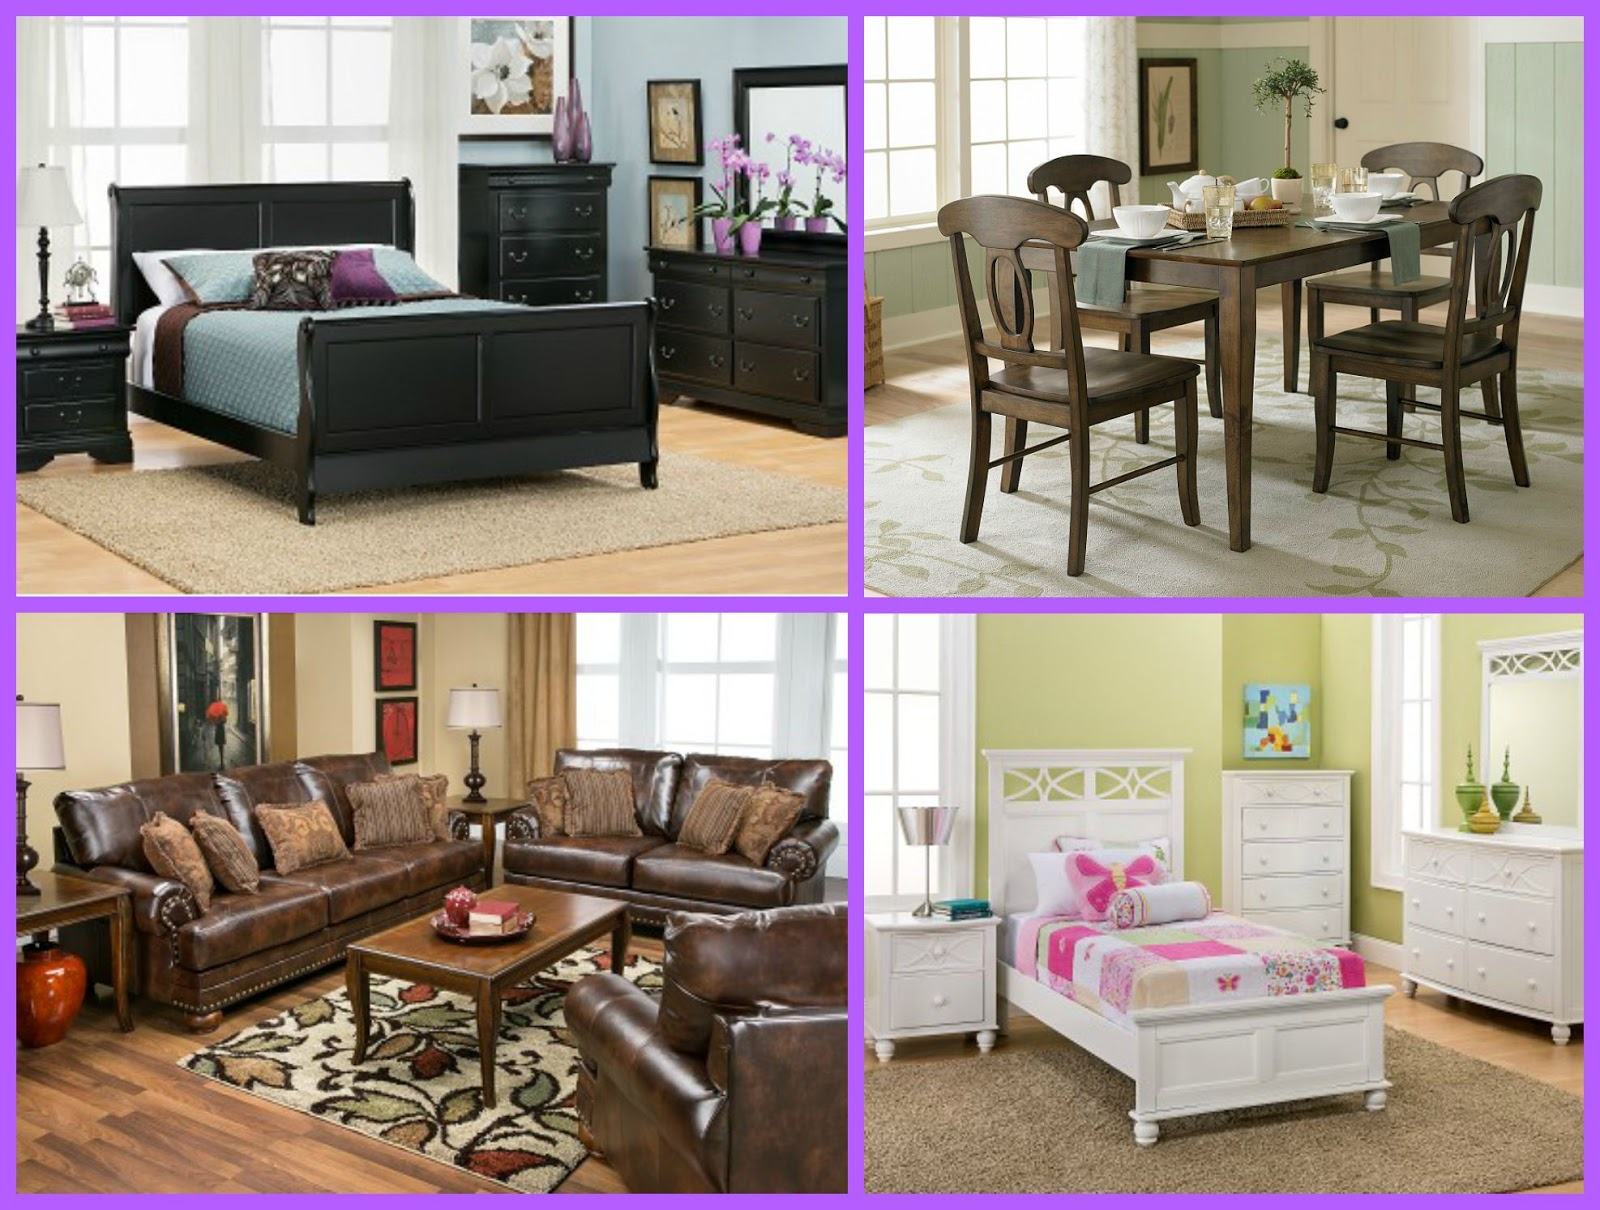 Beautiful We Are The Best Furniture Store At The Lake Of The Ozarks Because We Uphold  The Original Goals Of Our Founder. Slumberland Furniture Is Committed To ...